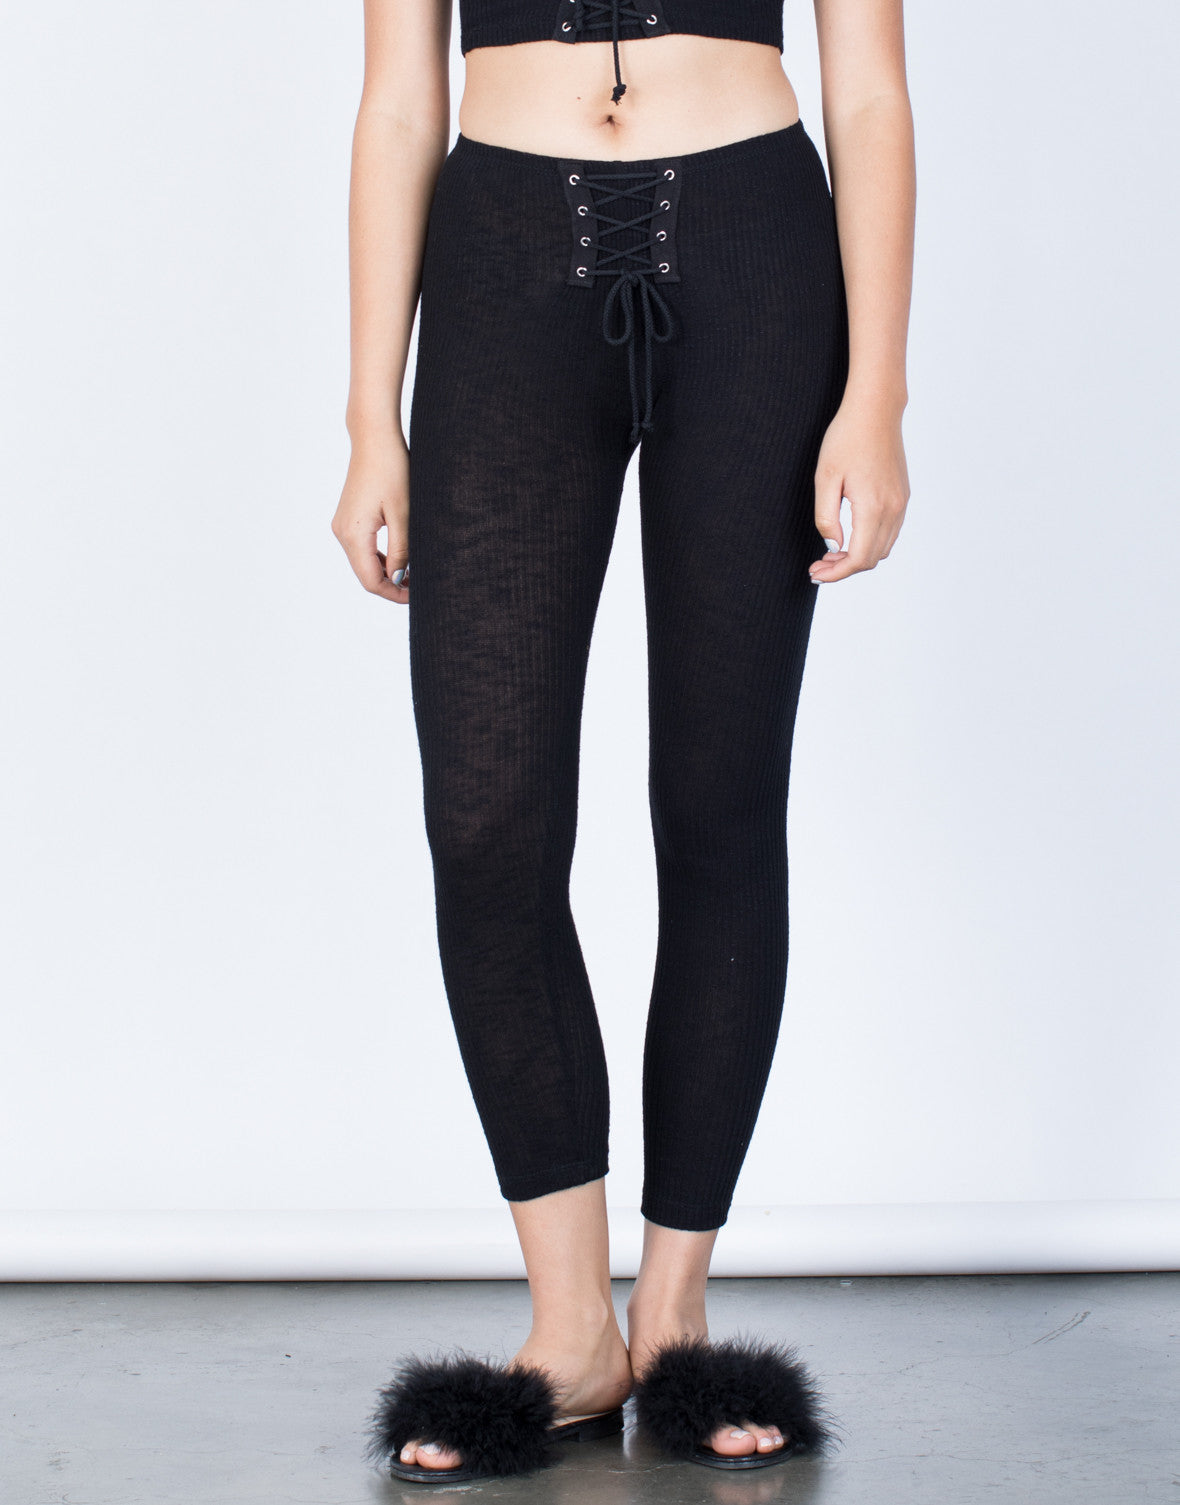 Front View of Laced and Tied Leggings